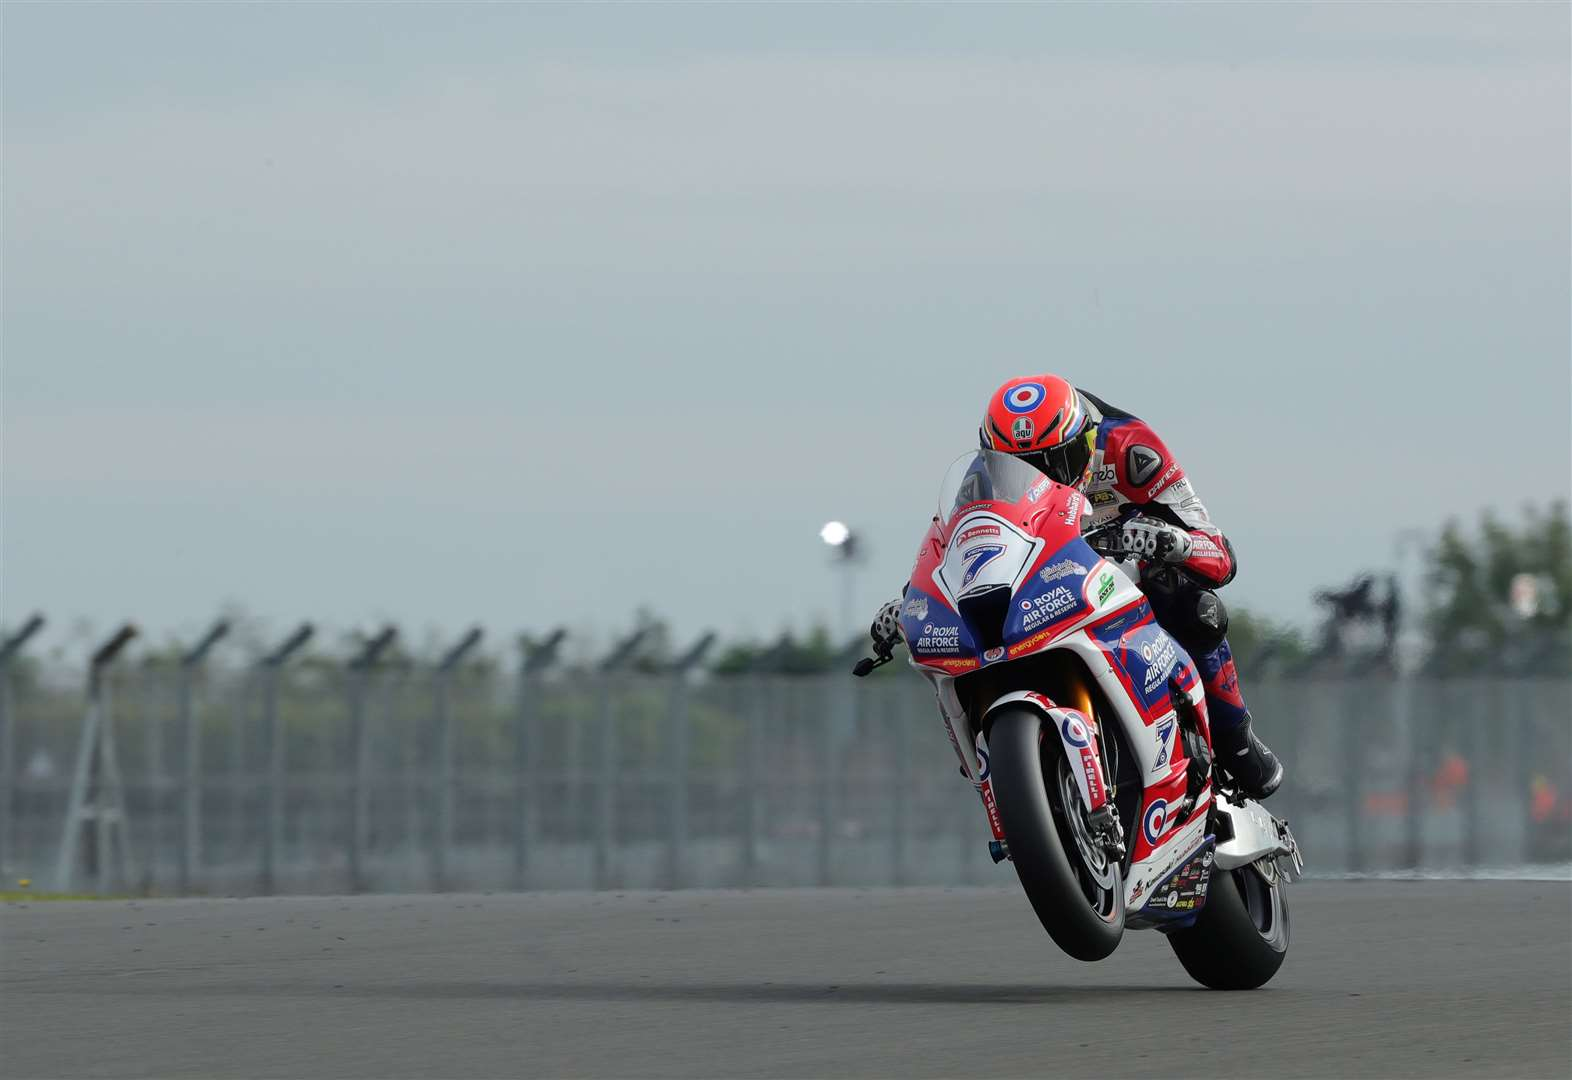 Vickers impresses two weeks after wrist break in BSB race